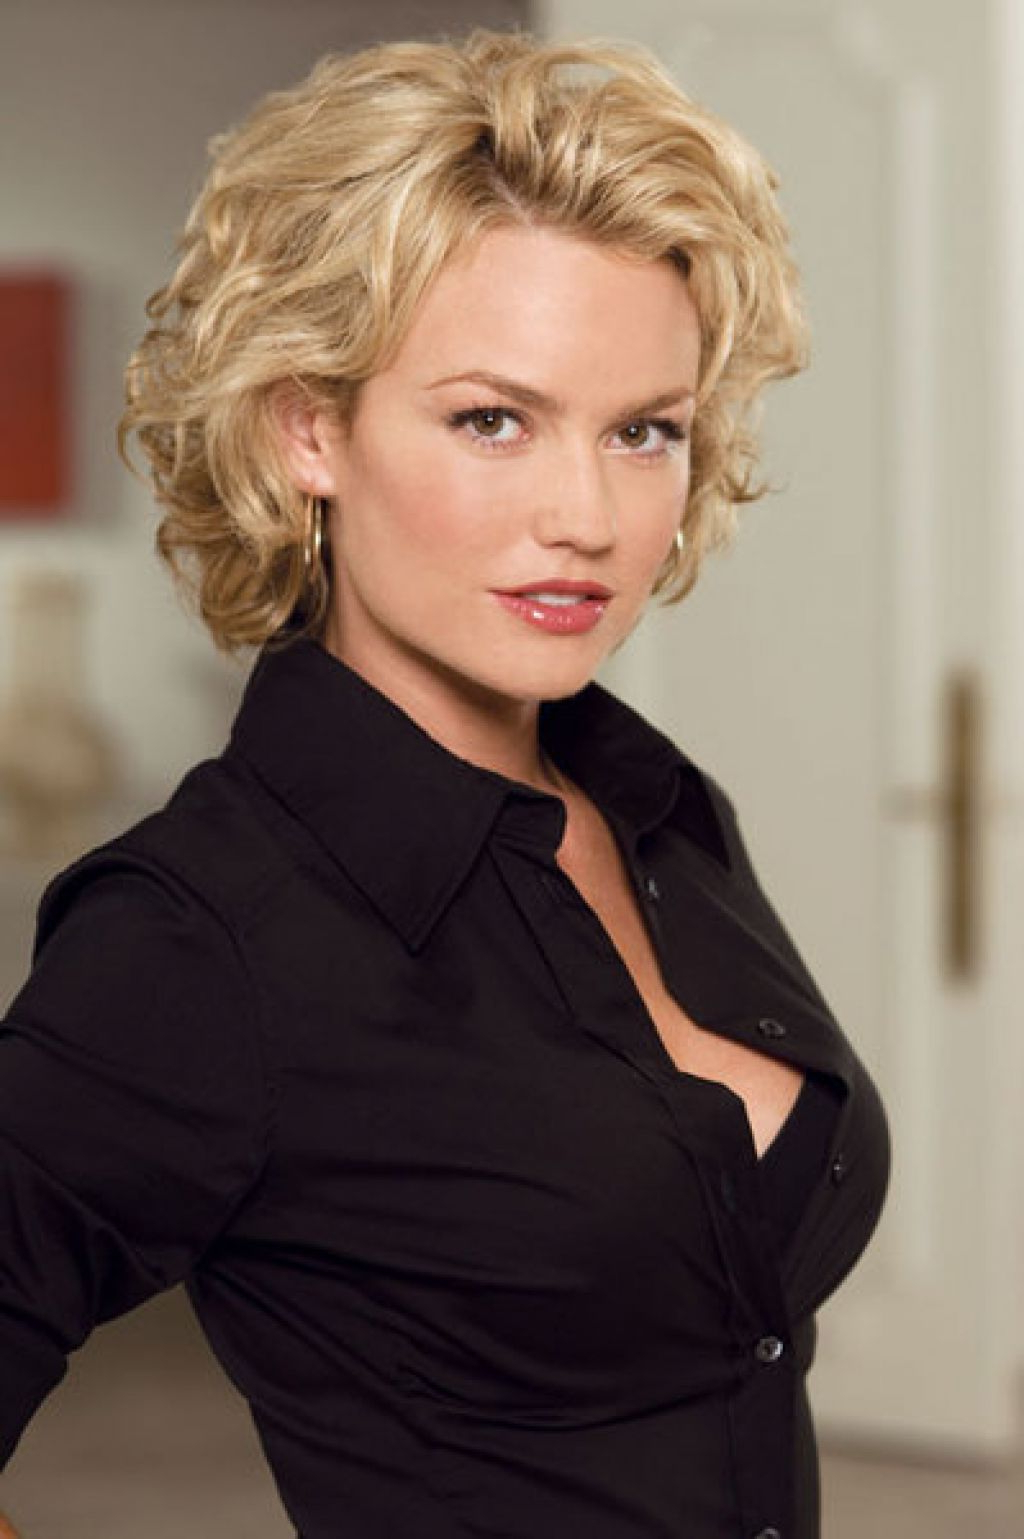 Curly Hairstyles For Women Over 40 | Over 40 Hairstyles | Pinterest Pertaining To Pure Blonde Shorter Hairstyles For Older Women (View 18 of 20)